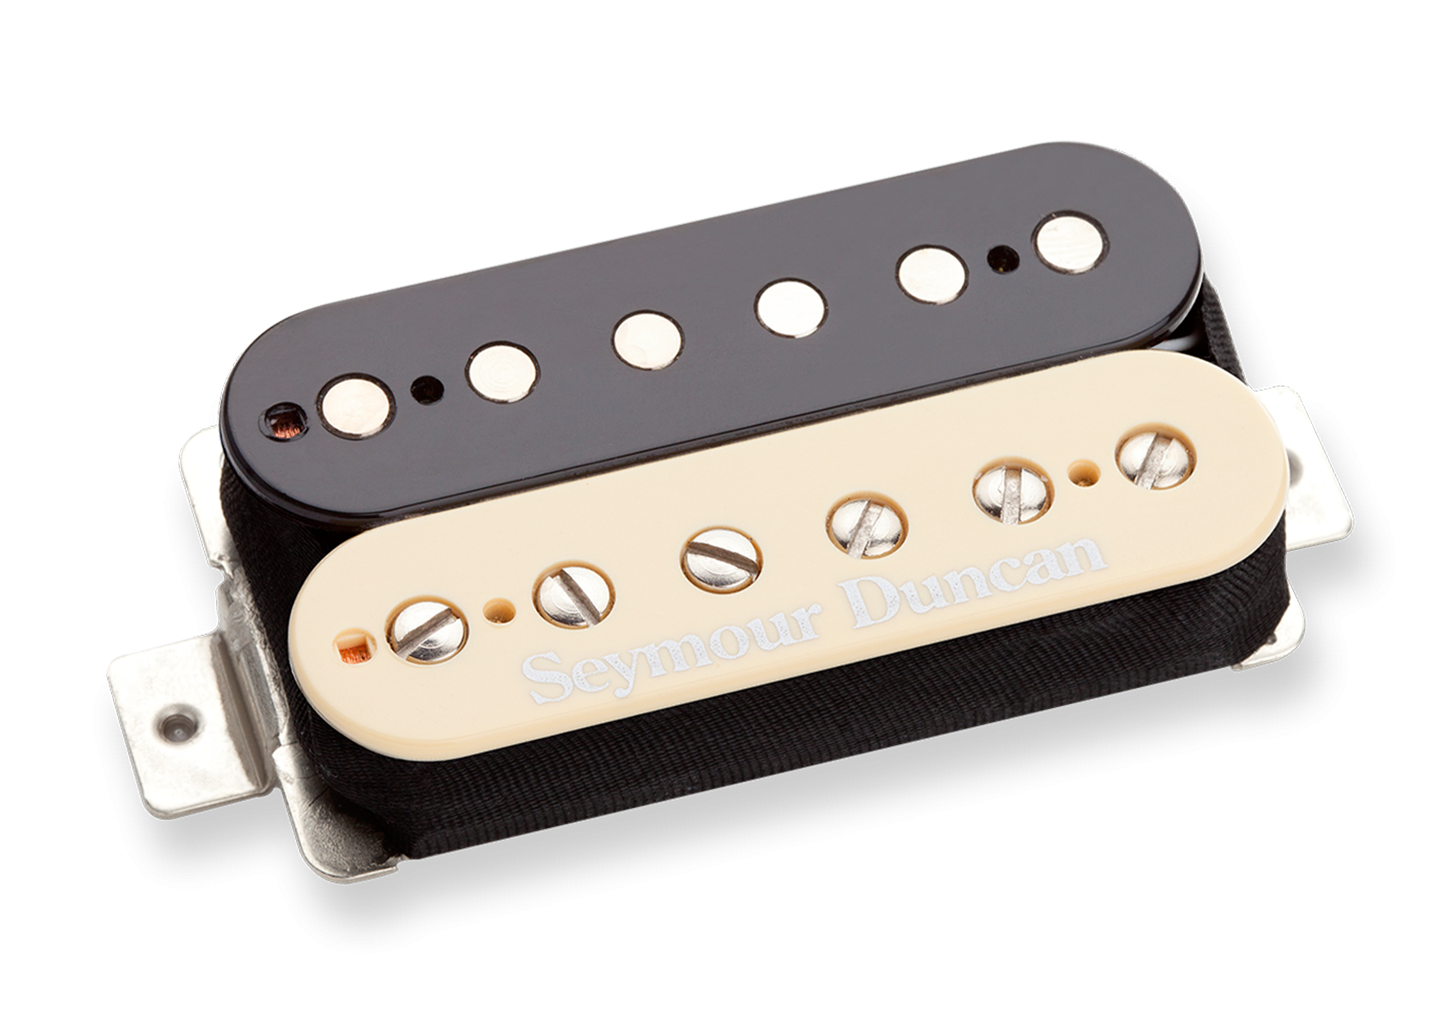 Seymour Duncan Duncan Distortion Humbucker - SH-6B Bridge Zebra